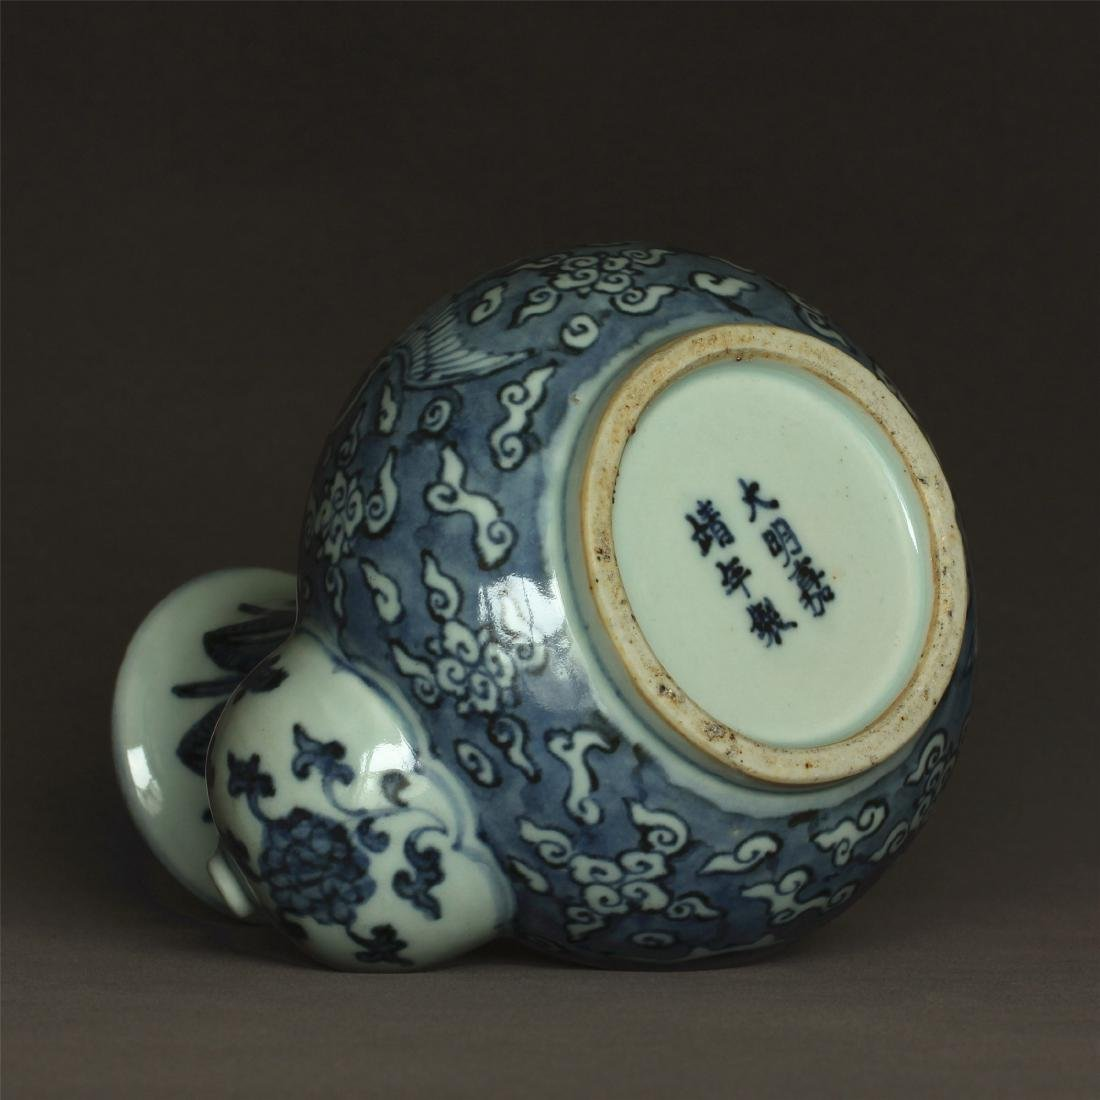 Blue and white porcelain pot of Ming Dynasty JiaJing - 9